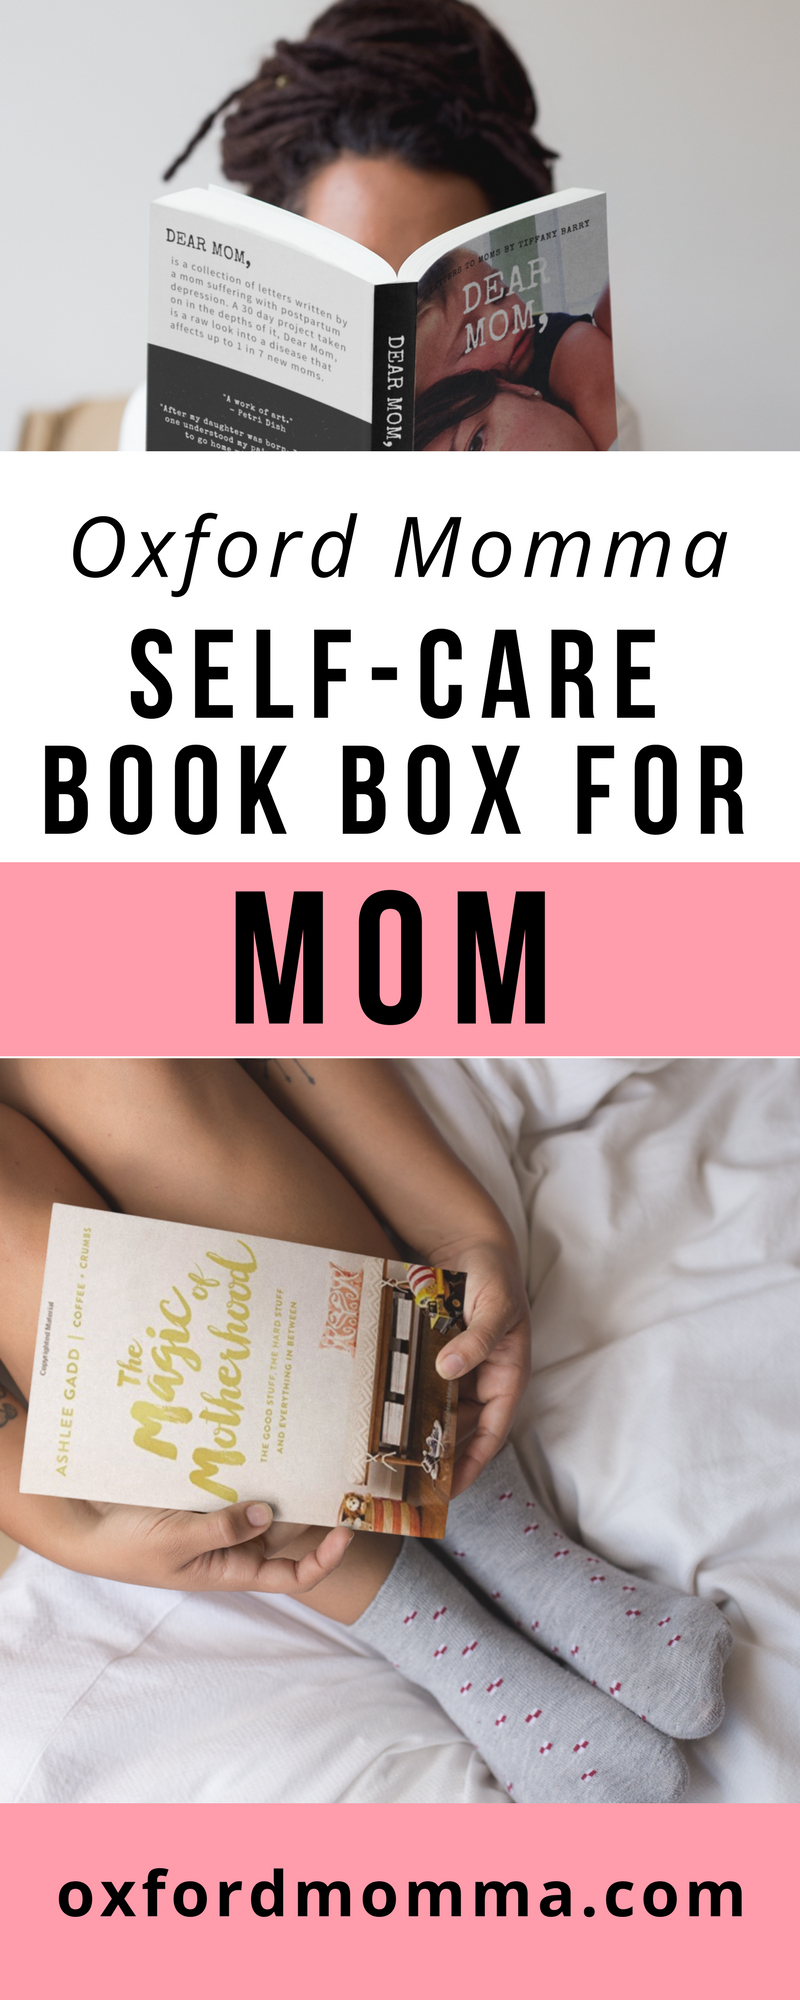 Oxford Momma delivers a self-care book box for moms like you! Get it at oxfordmomma.com